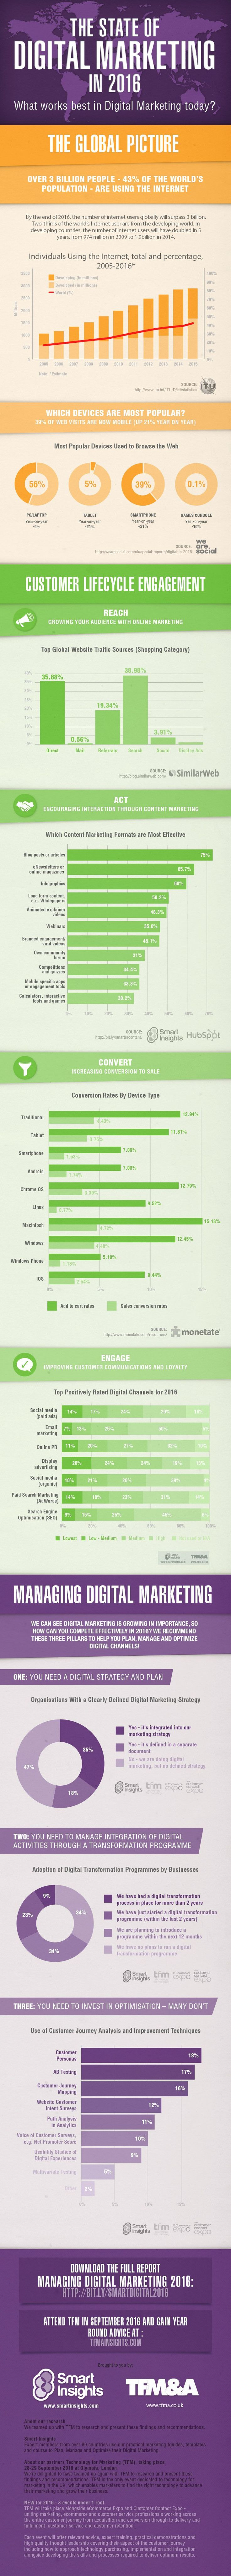 The State of Digital Marketing 2016 [Infographic]